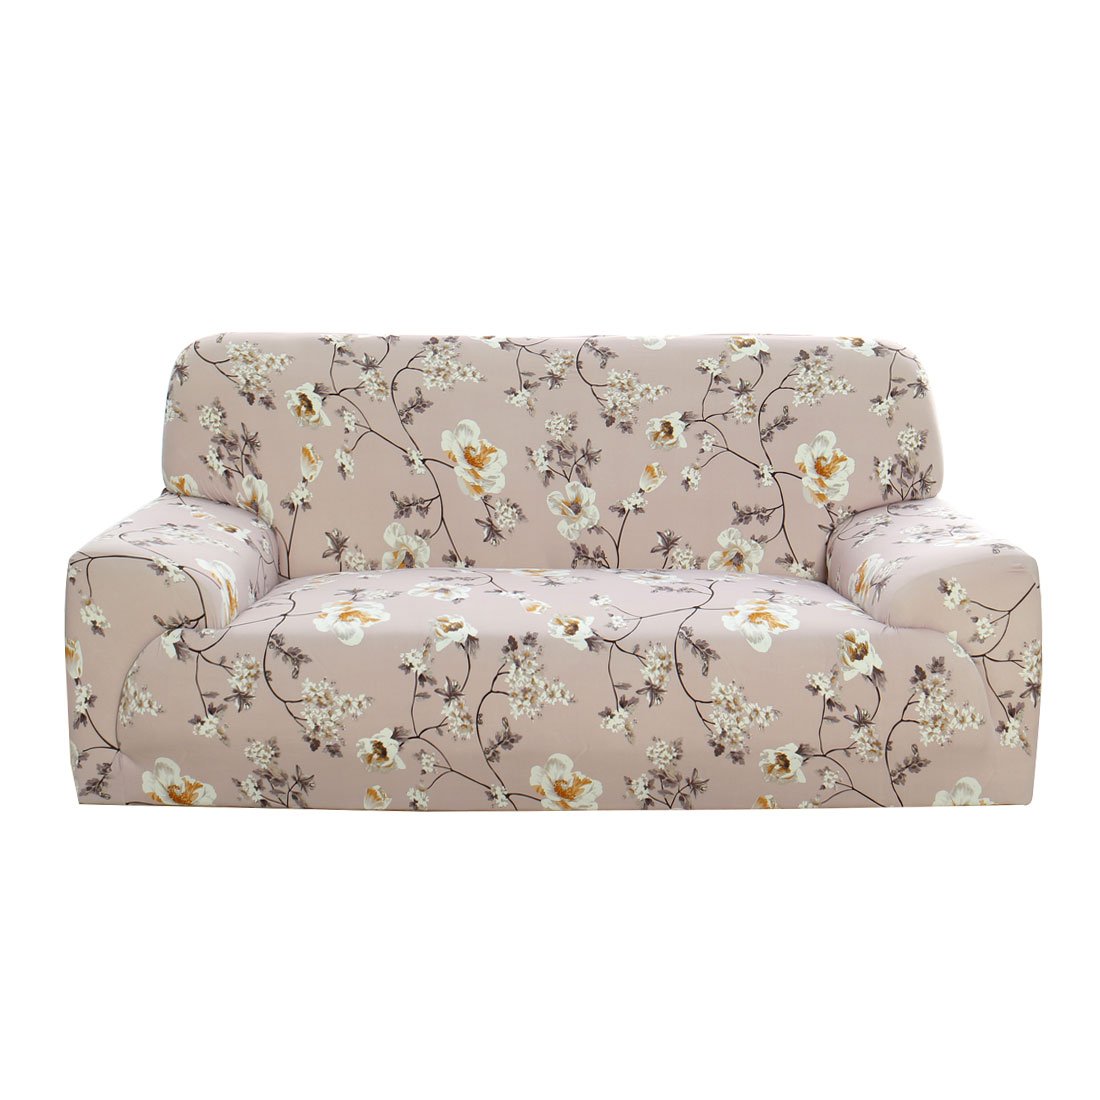 Sofa Couch Cover Slipcovers 2 Seater Strecth Protector for Sofa Couch Pattern 4